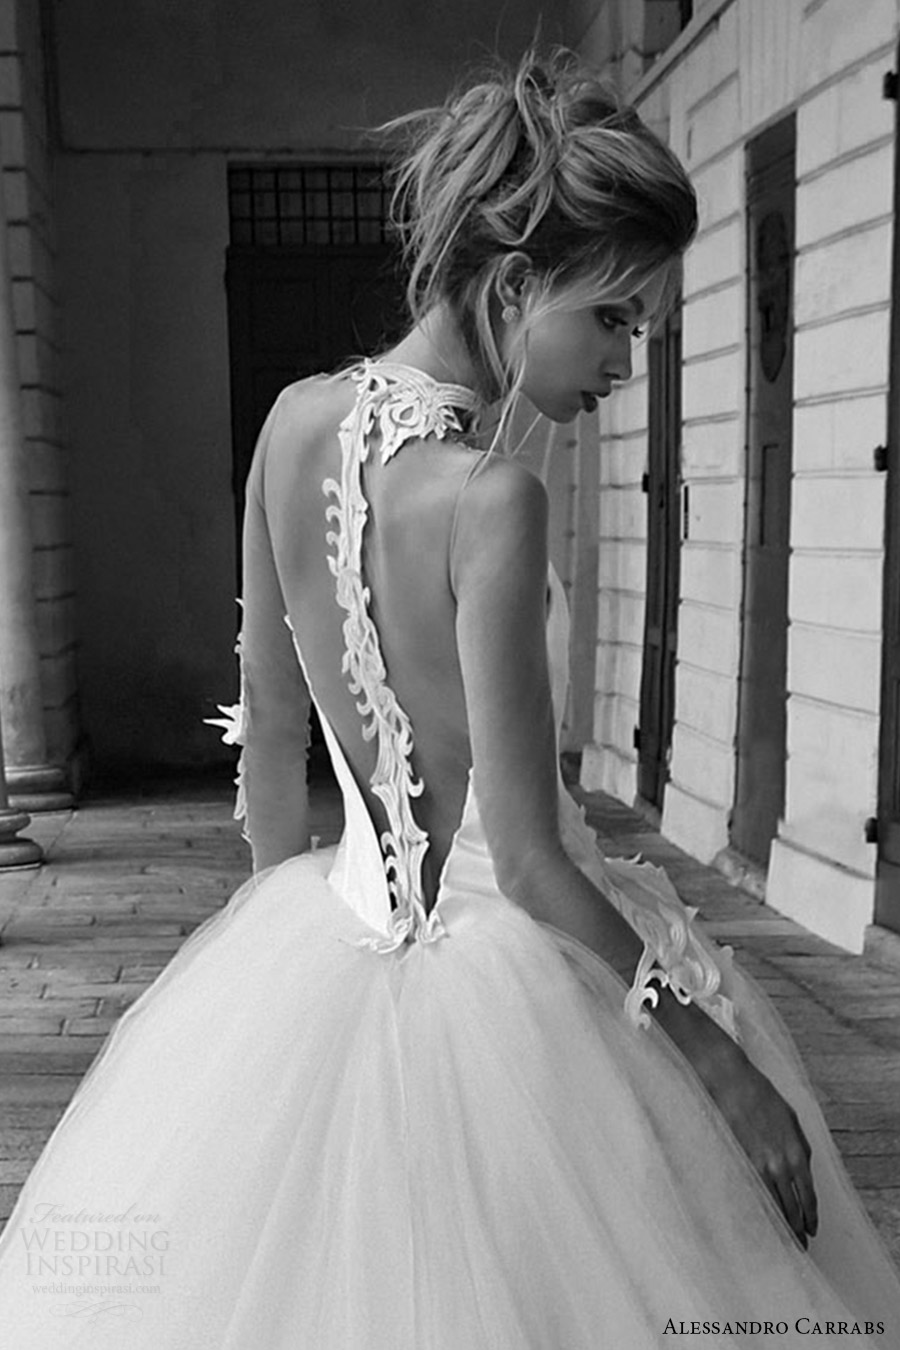 alessandro carrabs couture bridal 2016 illusion long sleeves sweetheart collar ball gown wedding dress (020) zbv low back romantic long train